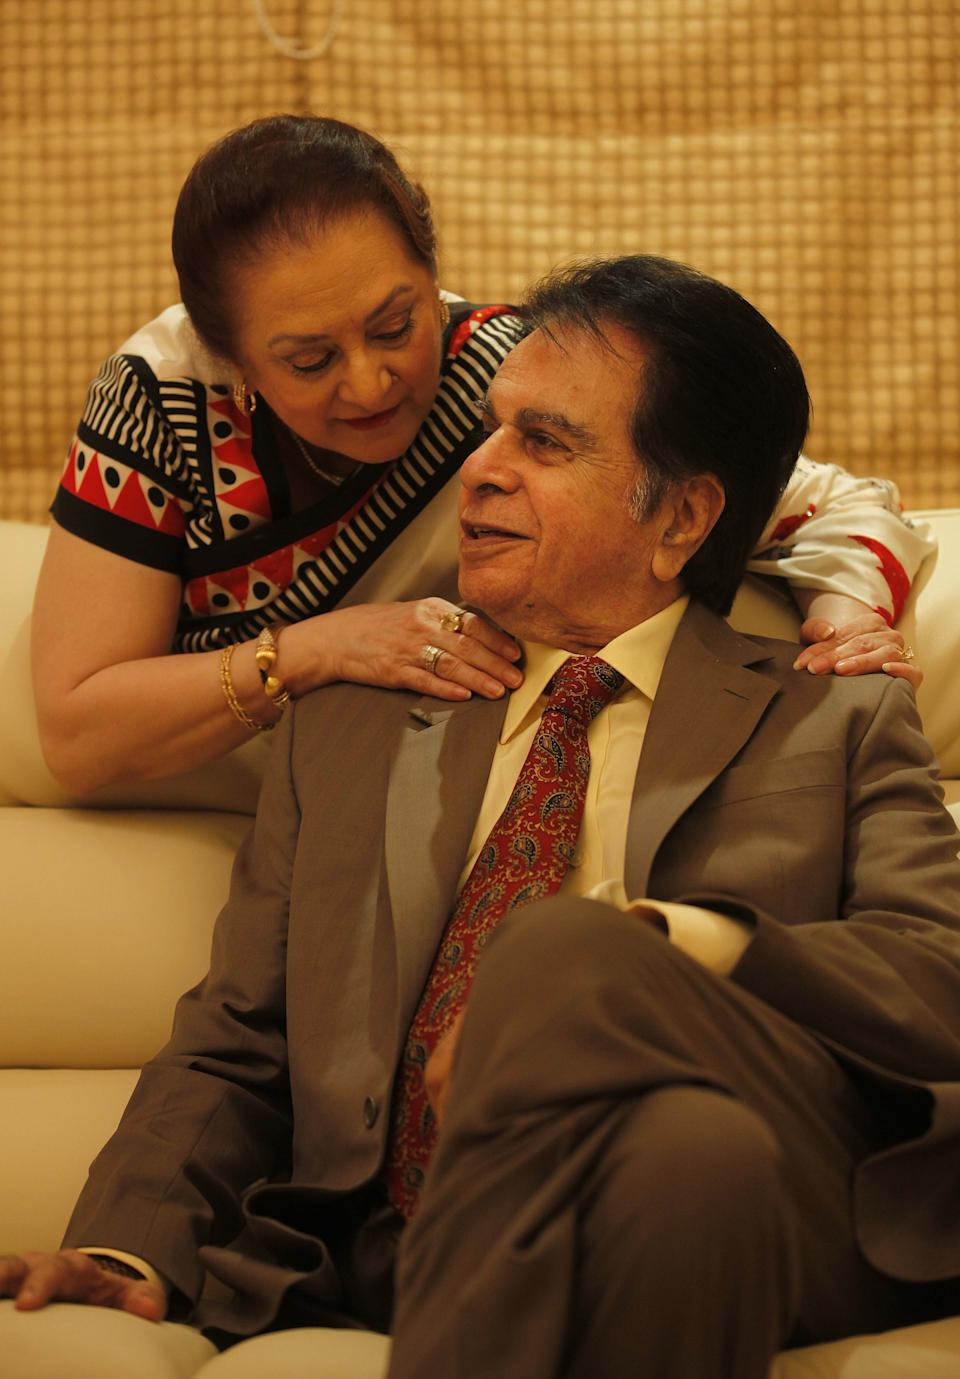 Dilip Kumar is survived by his wife Saira Banu. (Photo by Vijayanand Gupta/Hindustan Times via Getty Images)